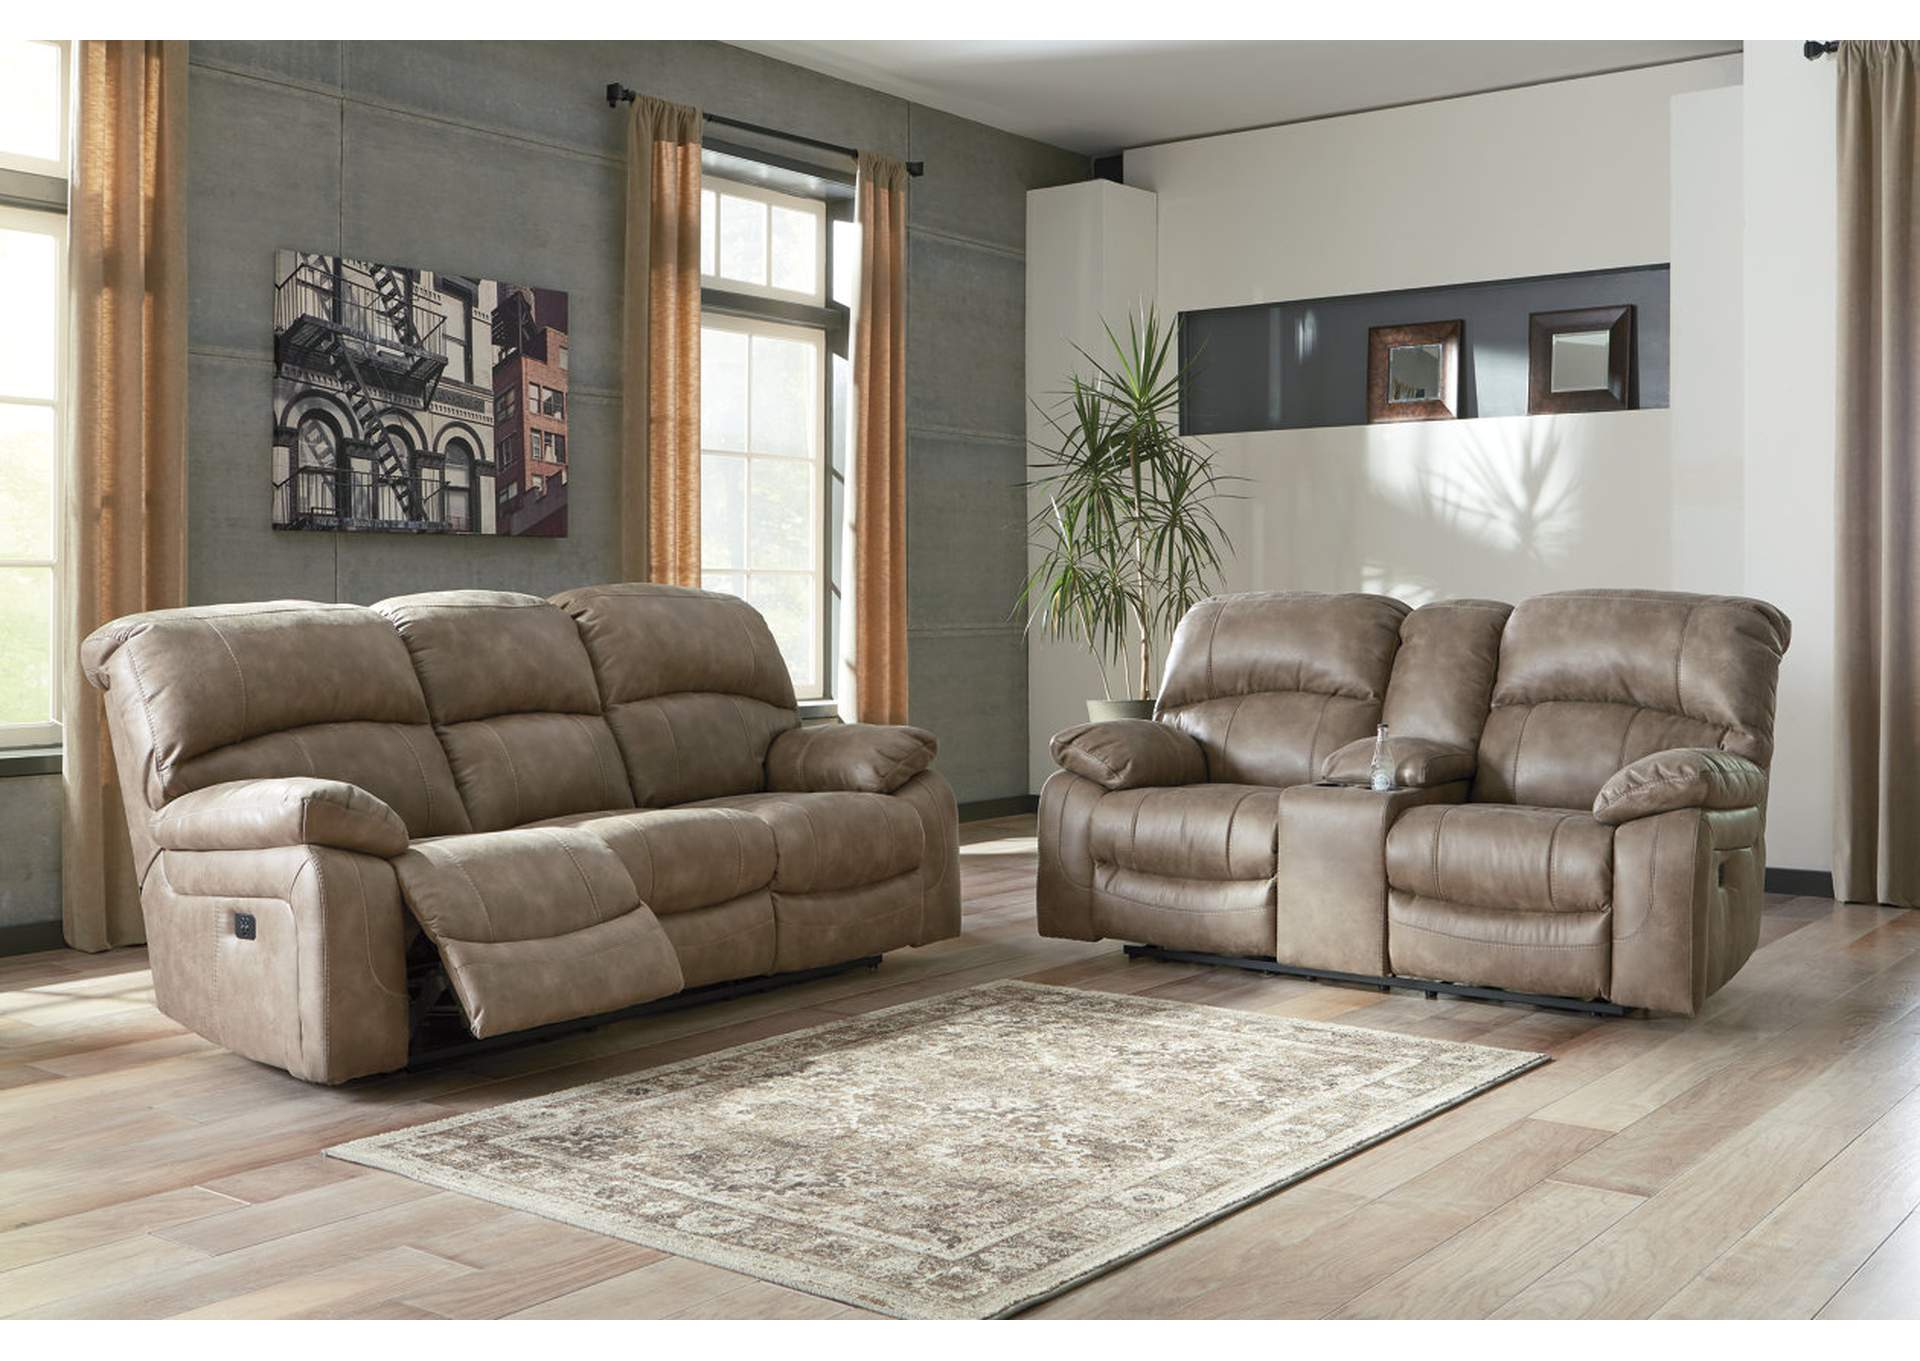 Jillian S Furniture Dunwell Driftwood Power Reclining Sofa And